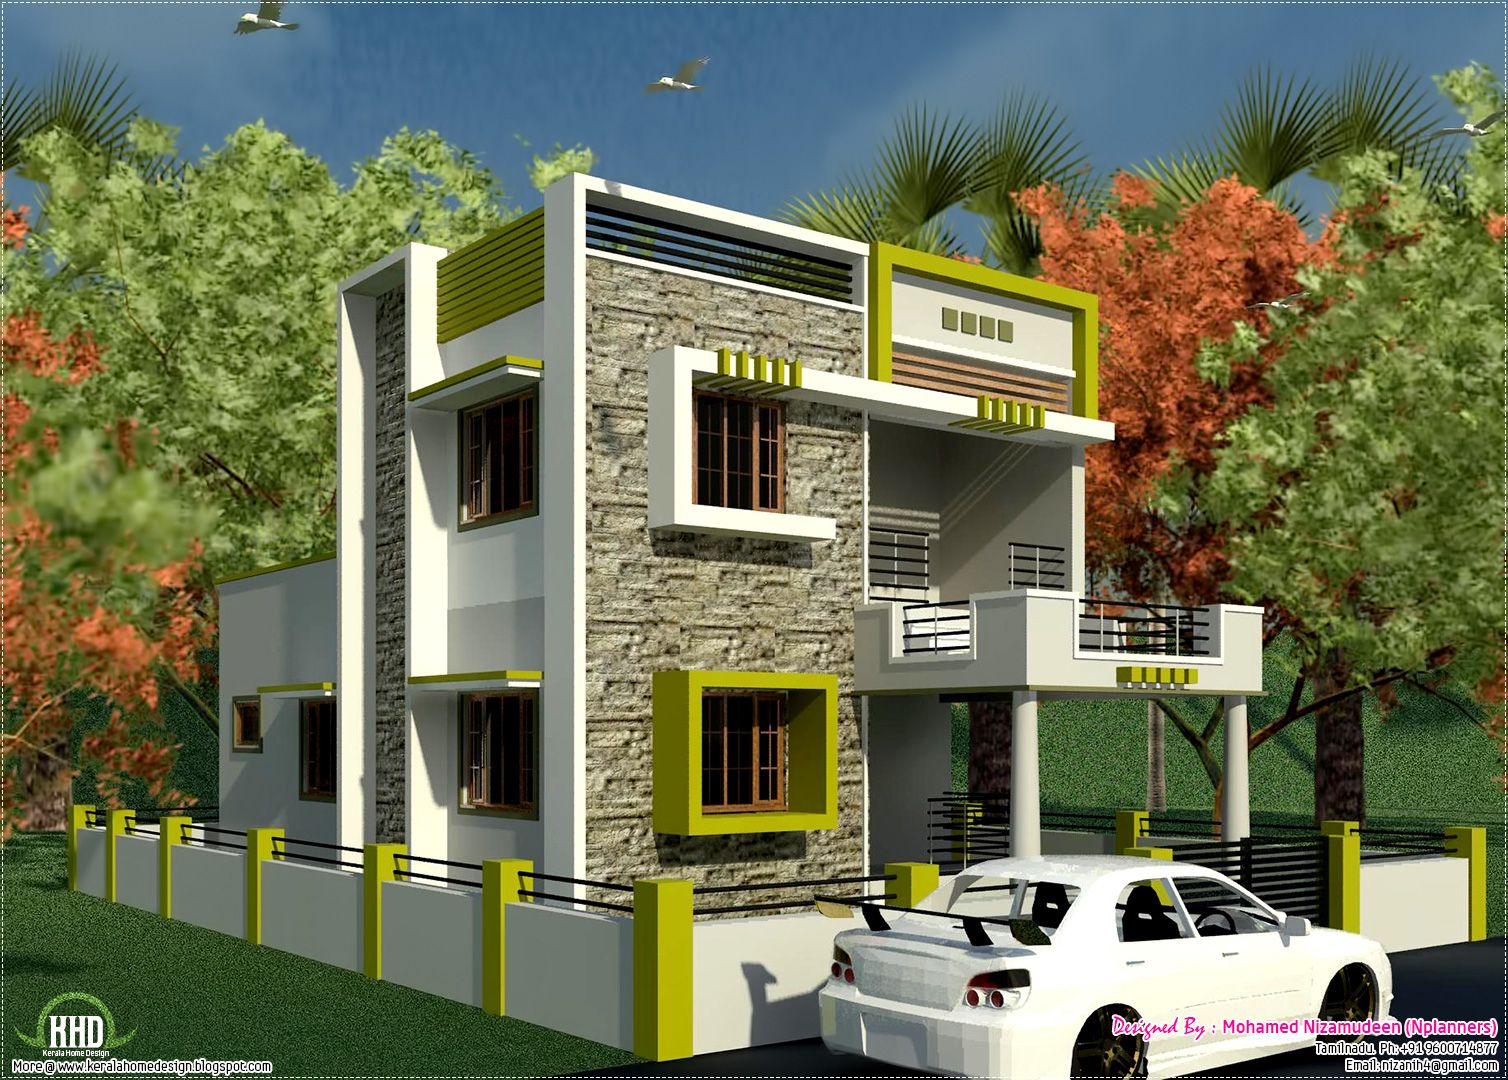 Small house with car park design tobfav com ideas for for New home exterior ideas